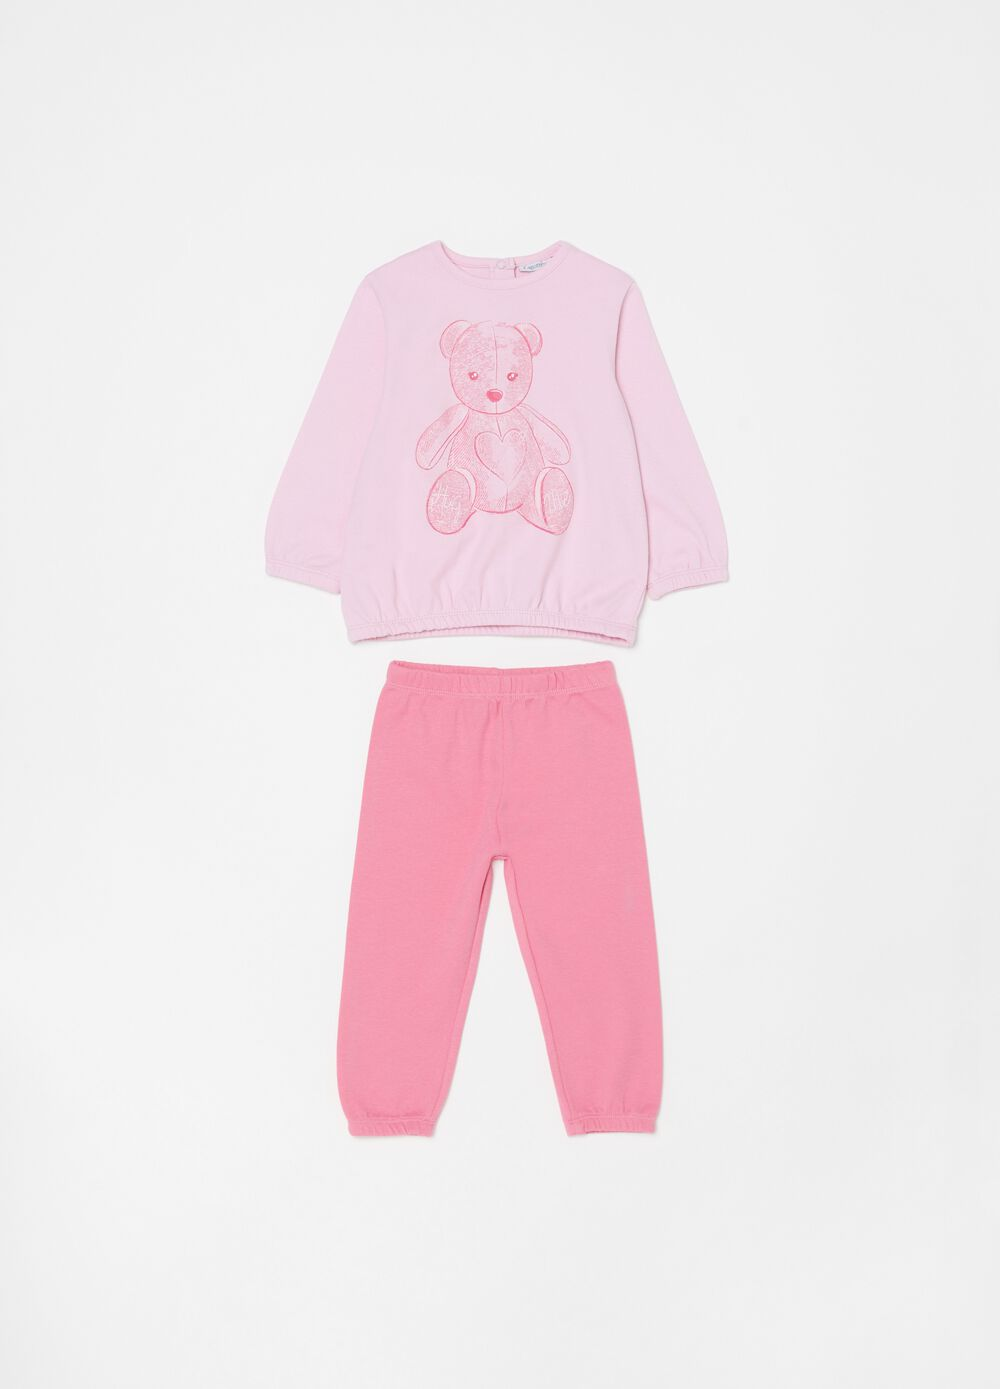 Pyjamas in 100% organic cotton with bear print